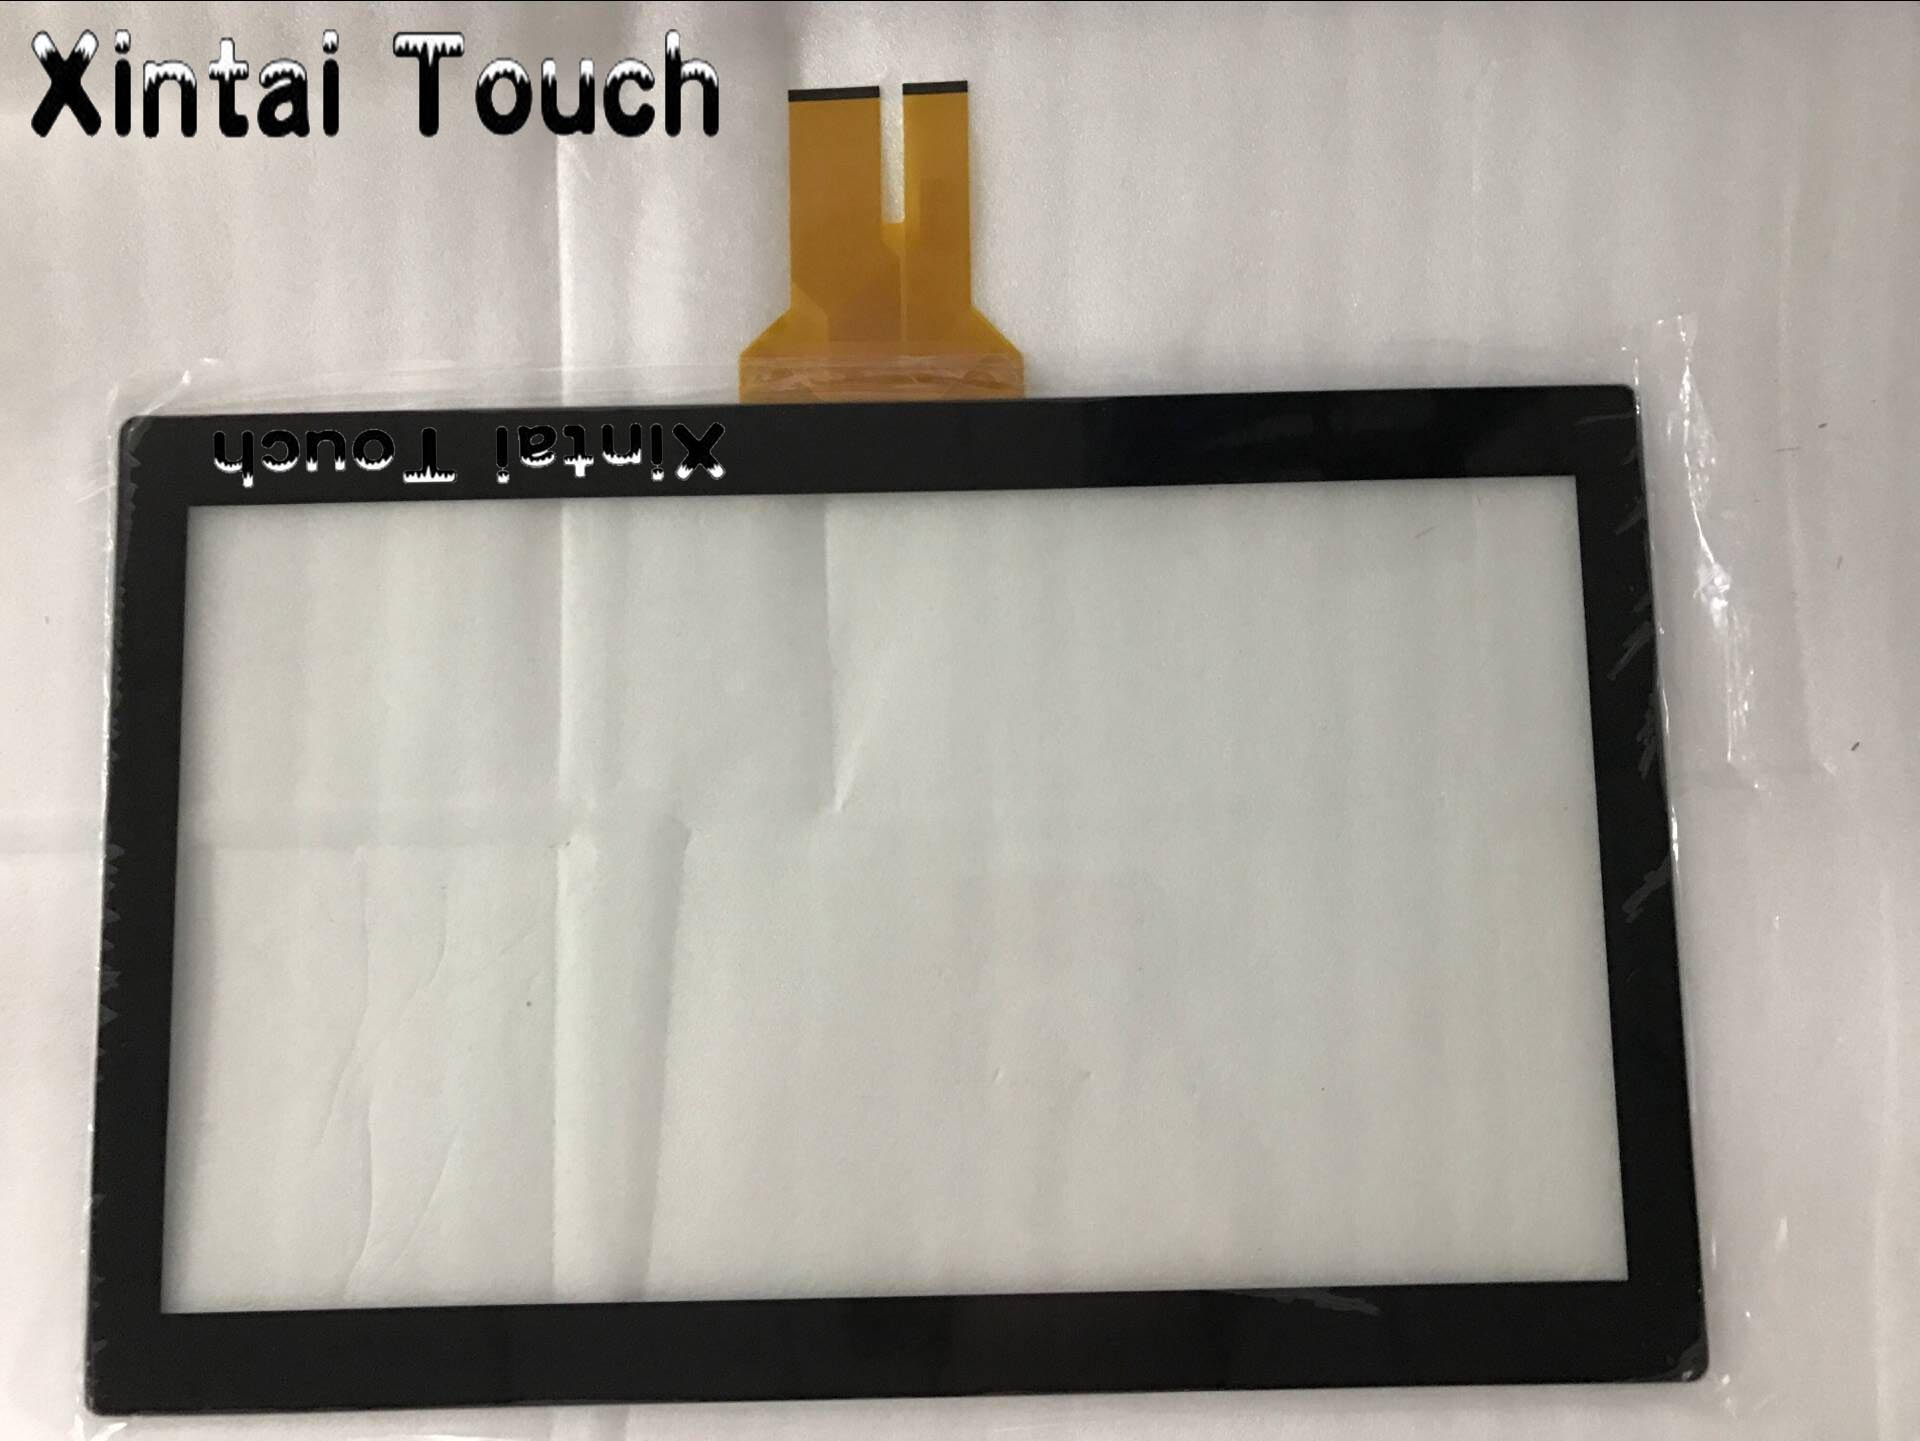 цены 15.6 Inch 10 Points Capacitive Multi Touch Screen Overlay/ Multi-Touch Screen Panel Kit for LCD Monitor with EETI controller